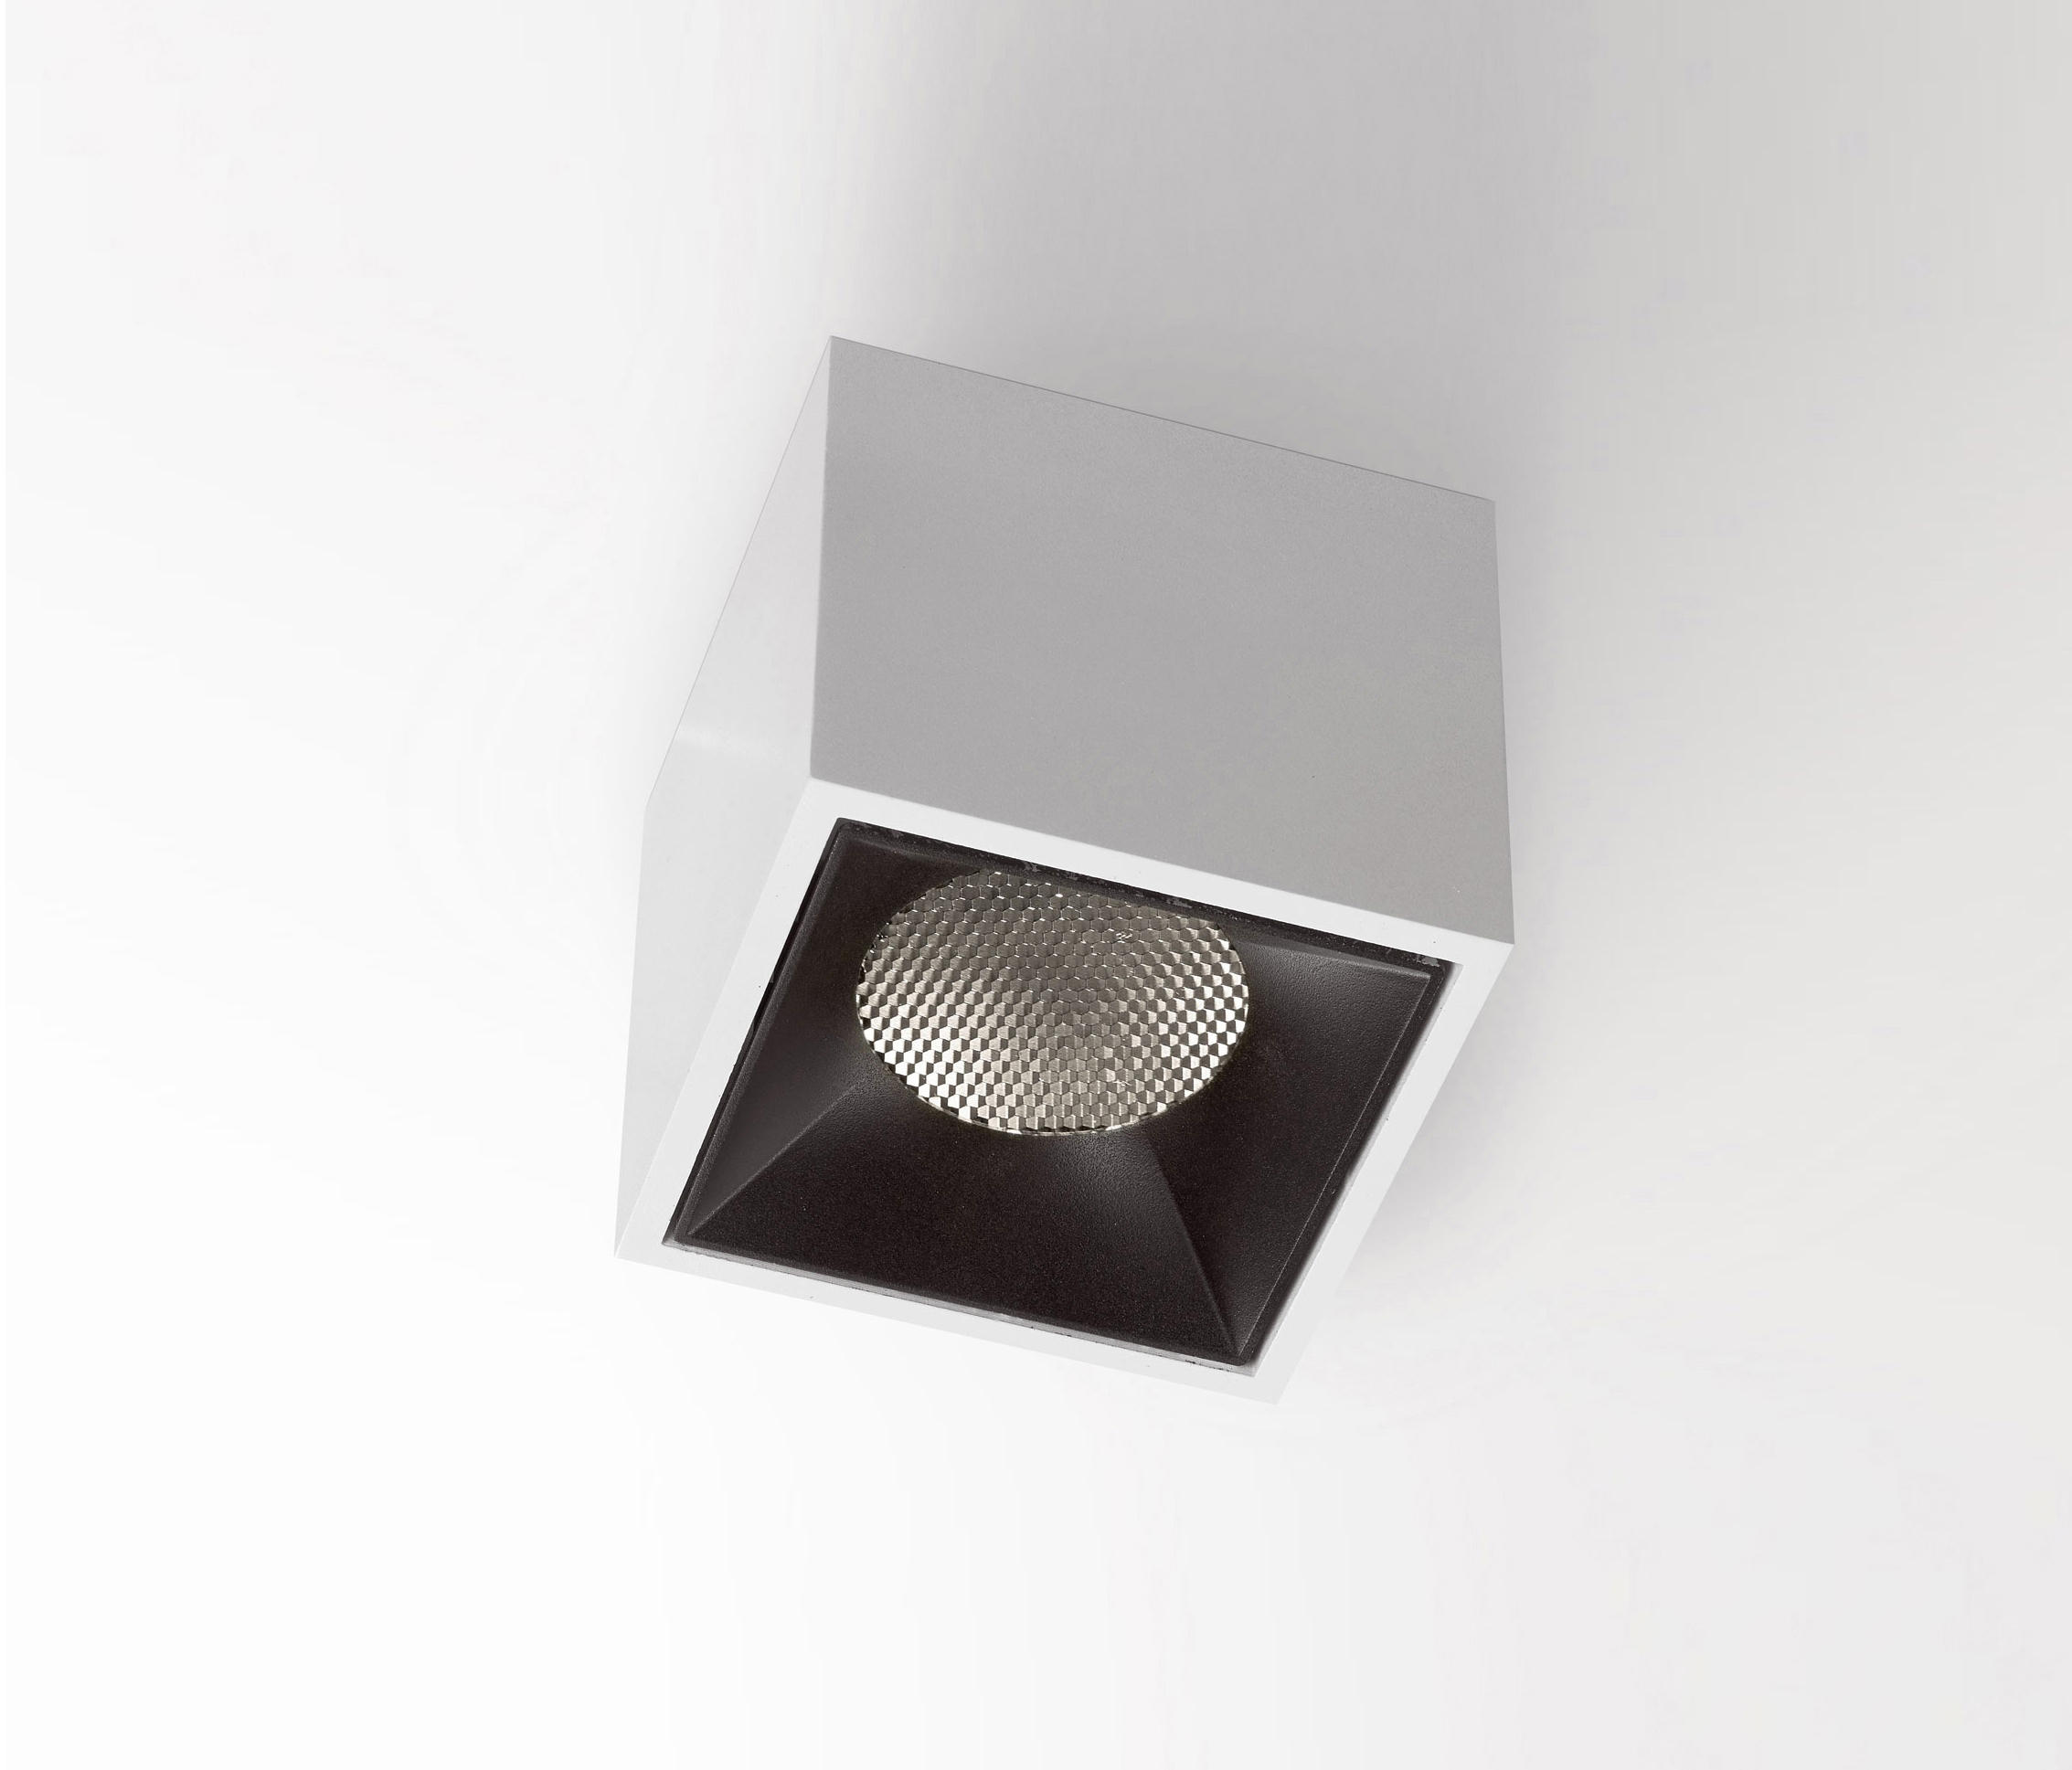 boxy xl s boxy xl s 93037 ceiling lights from delta. Black Bedroom Furniture Sets. Home Design Ideas